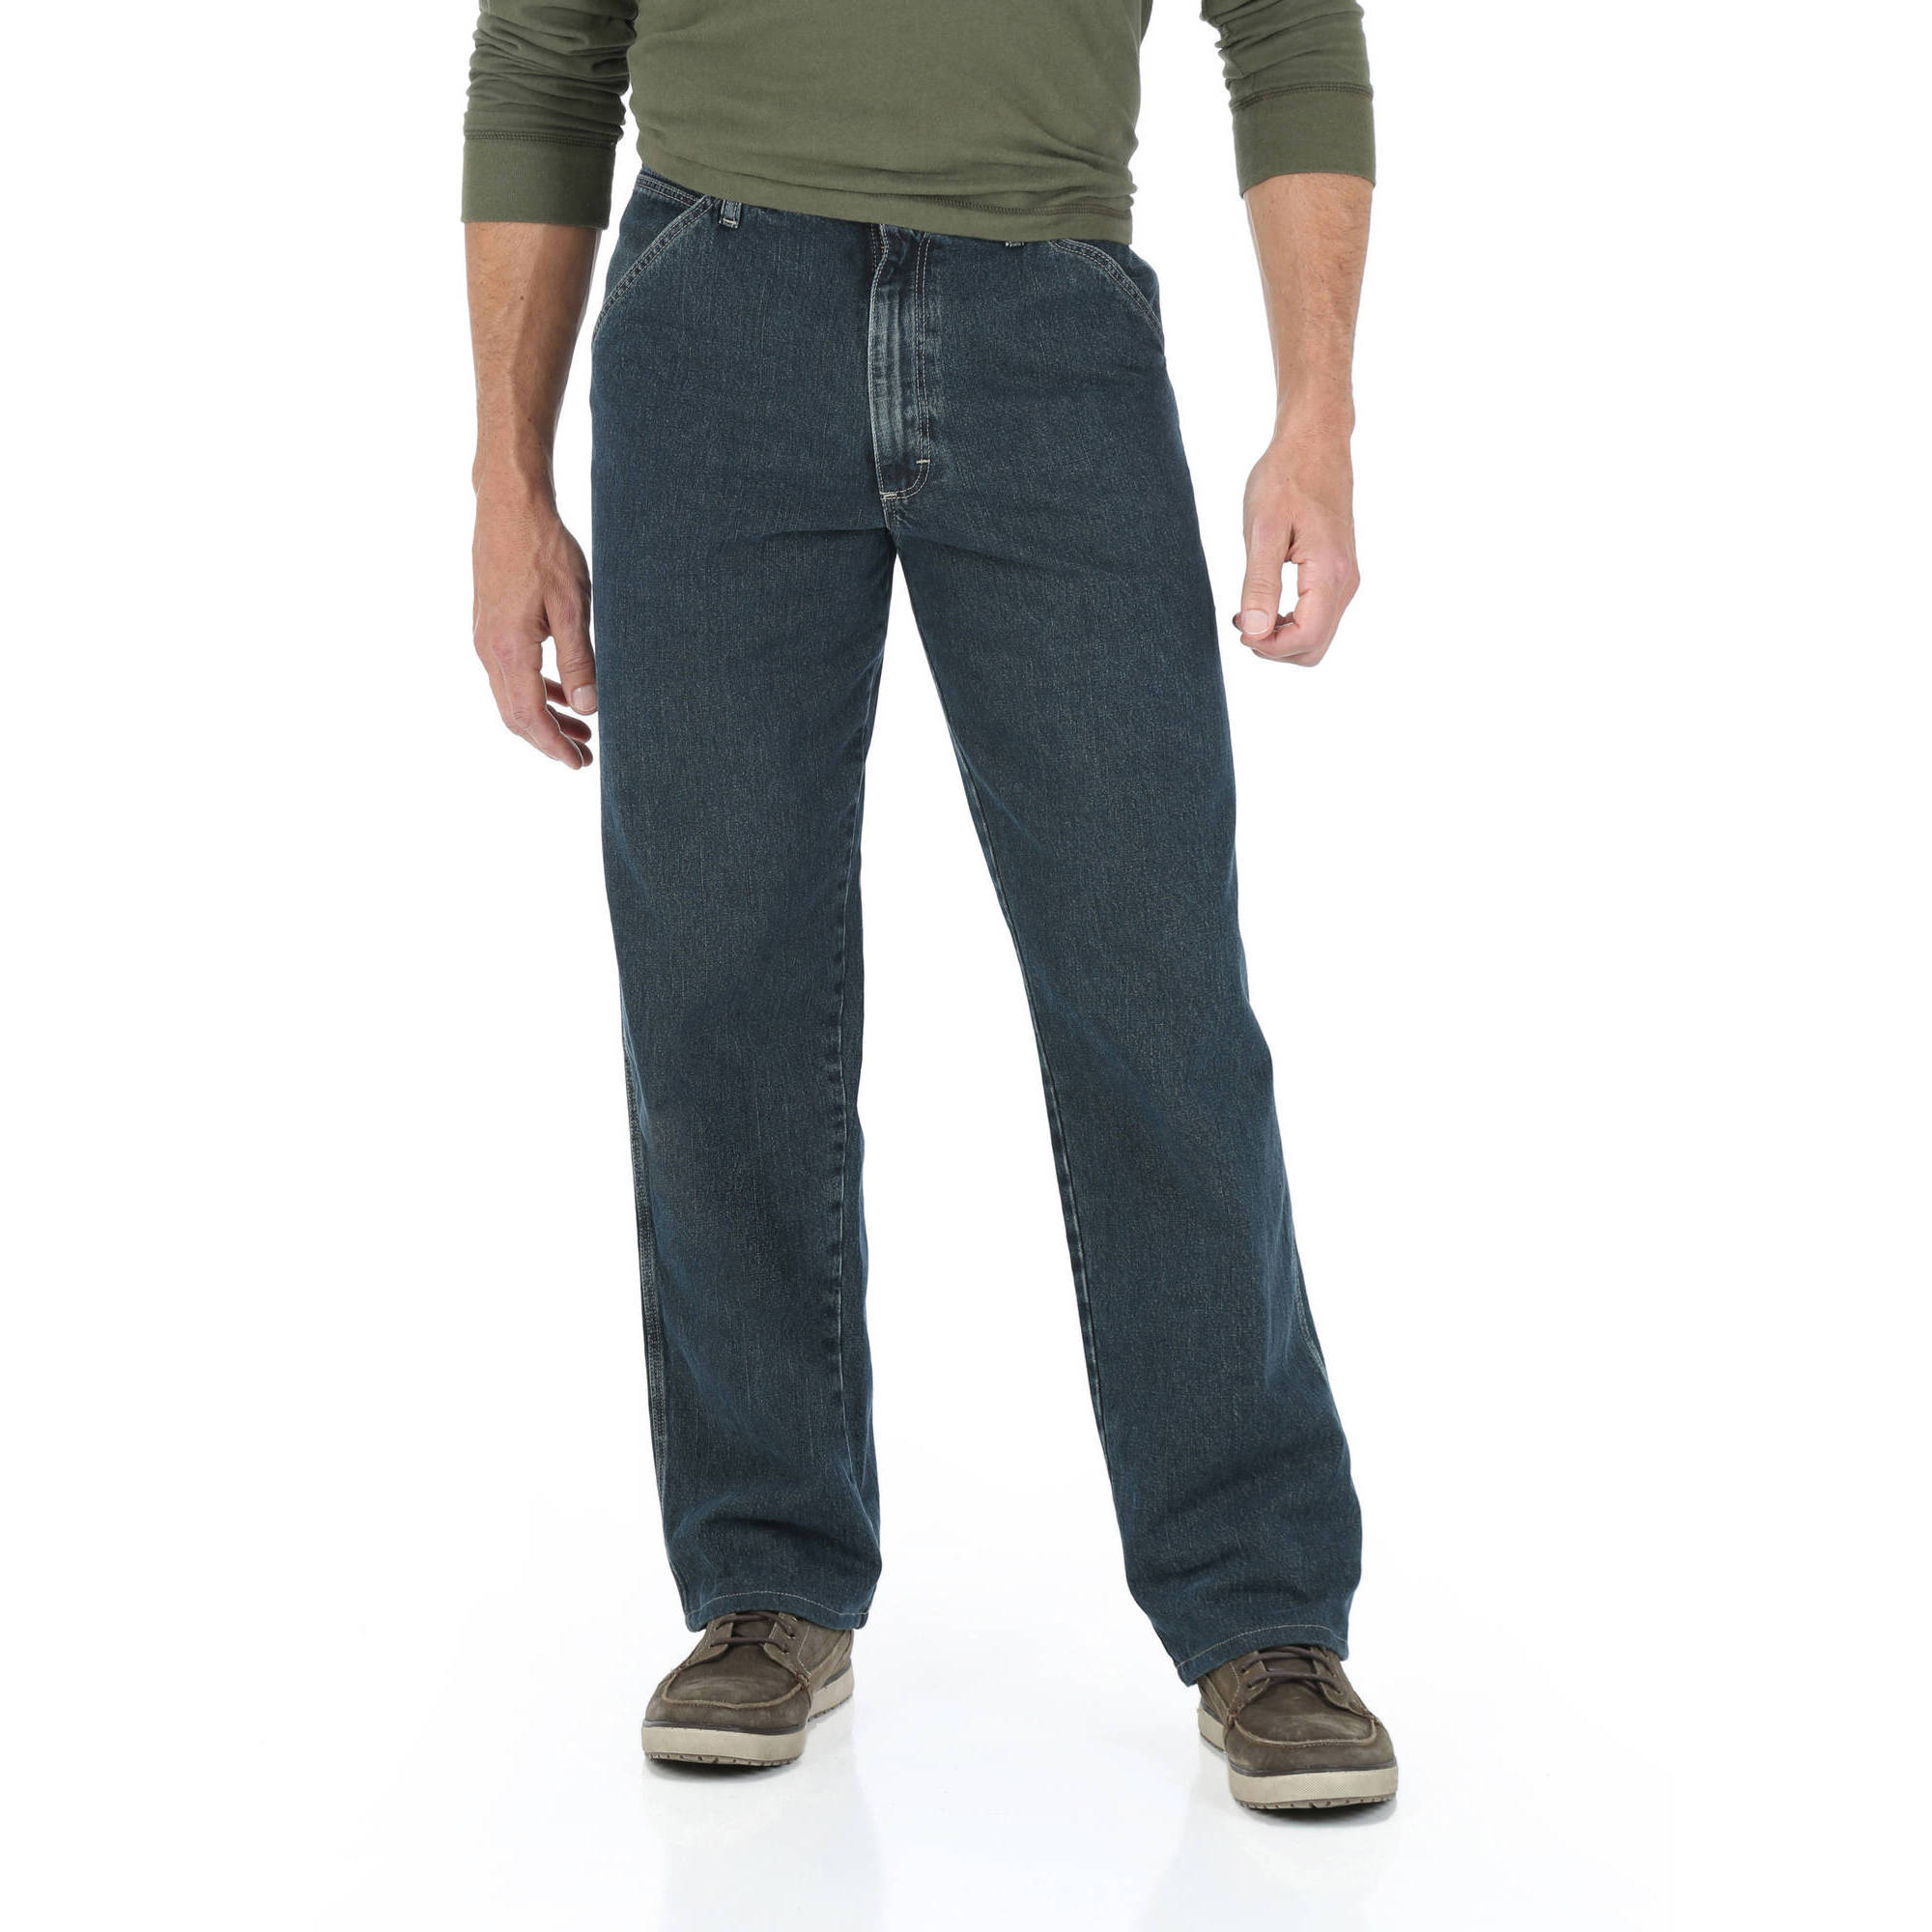 Wrangler Men's Carpenter Jeans - Walmart.com